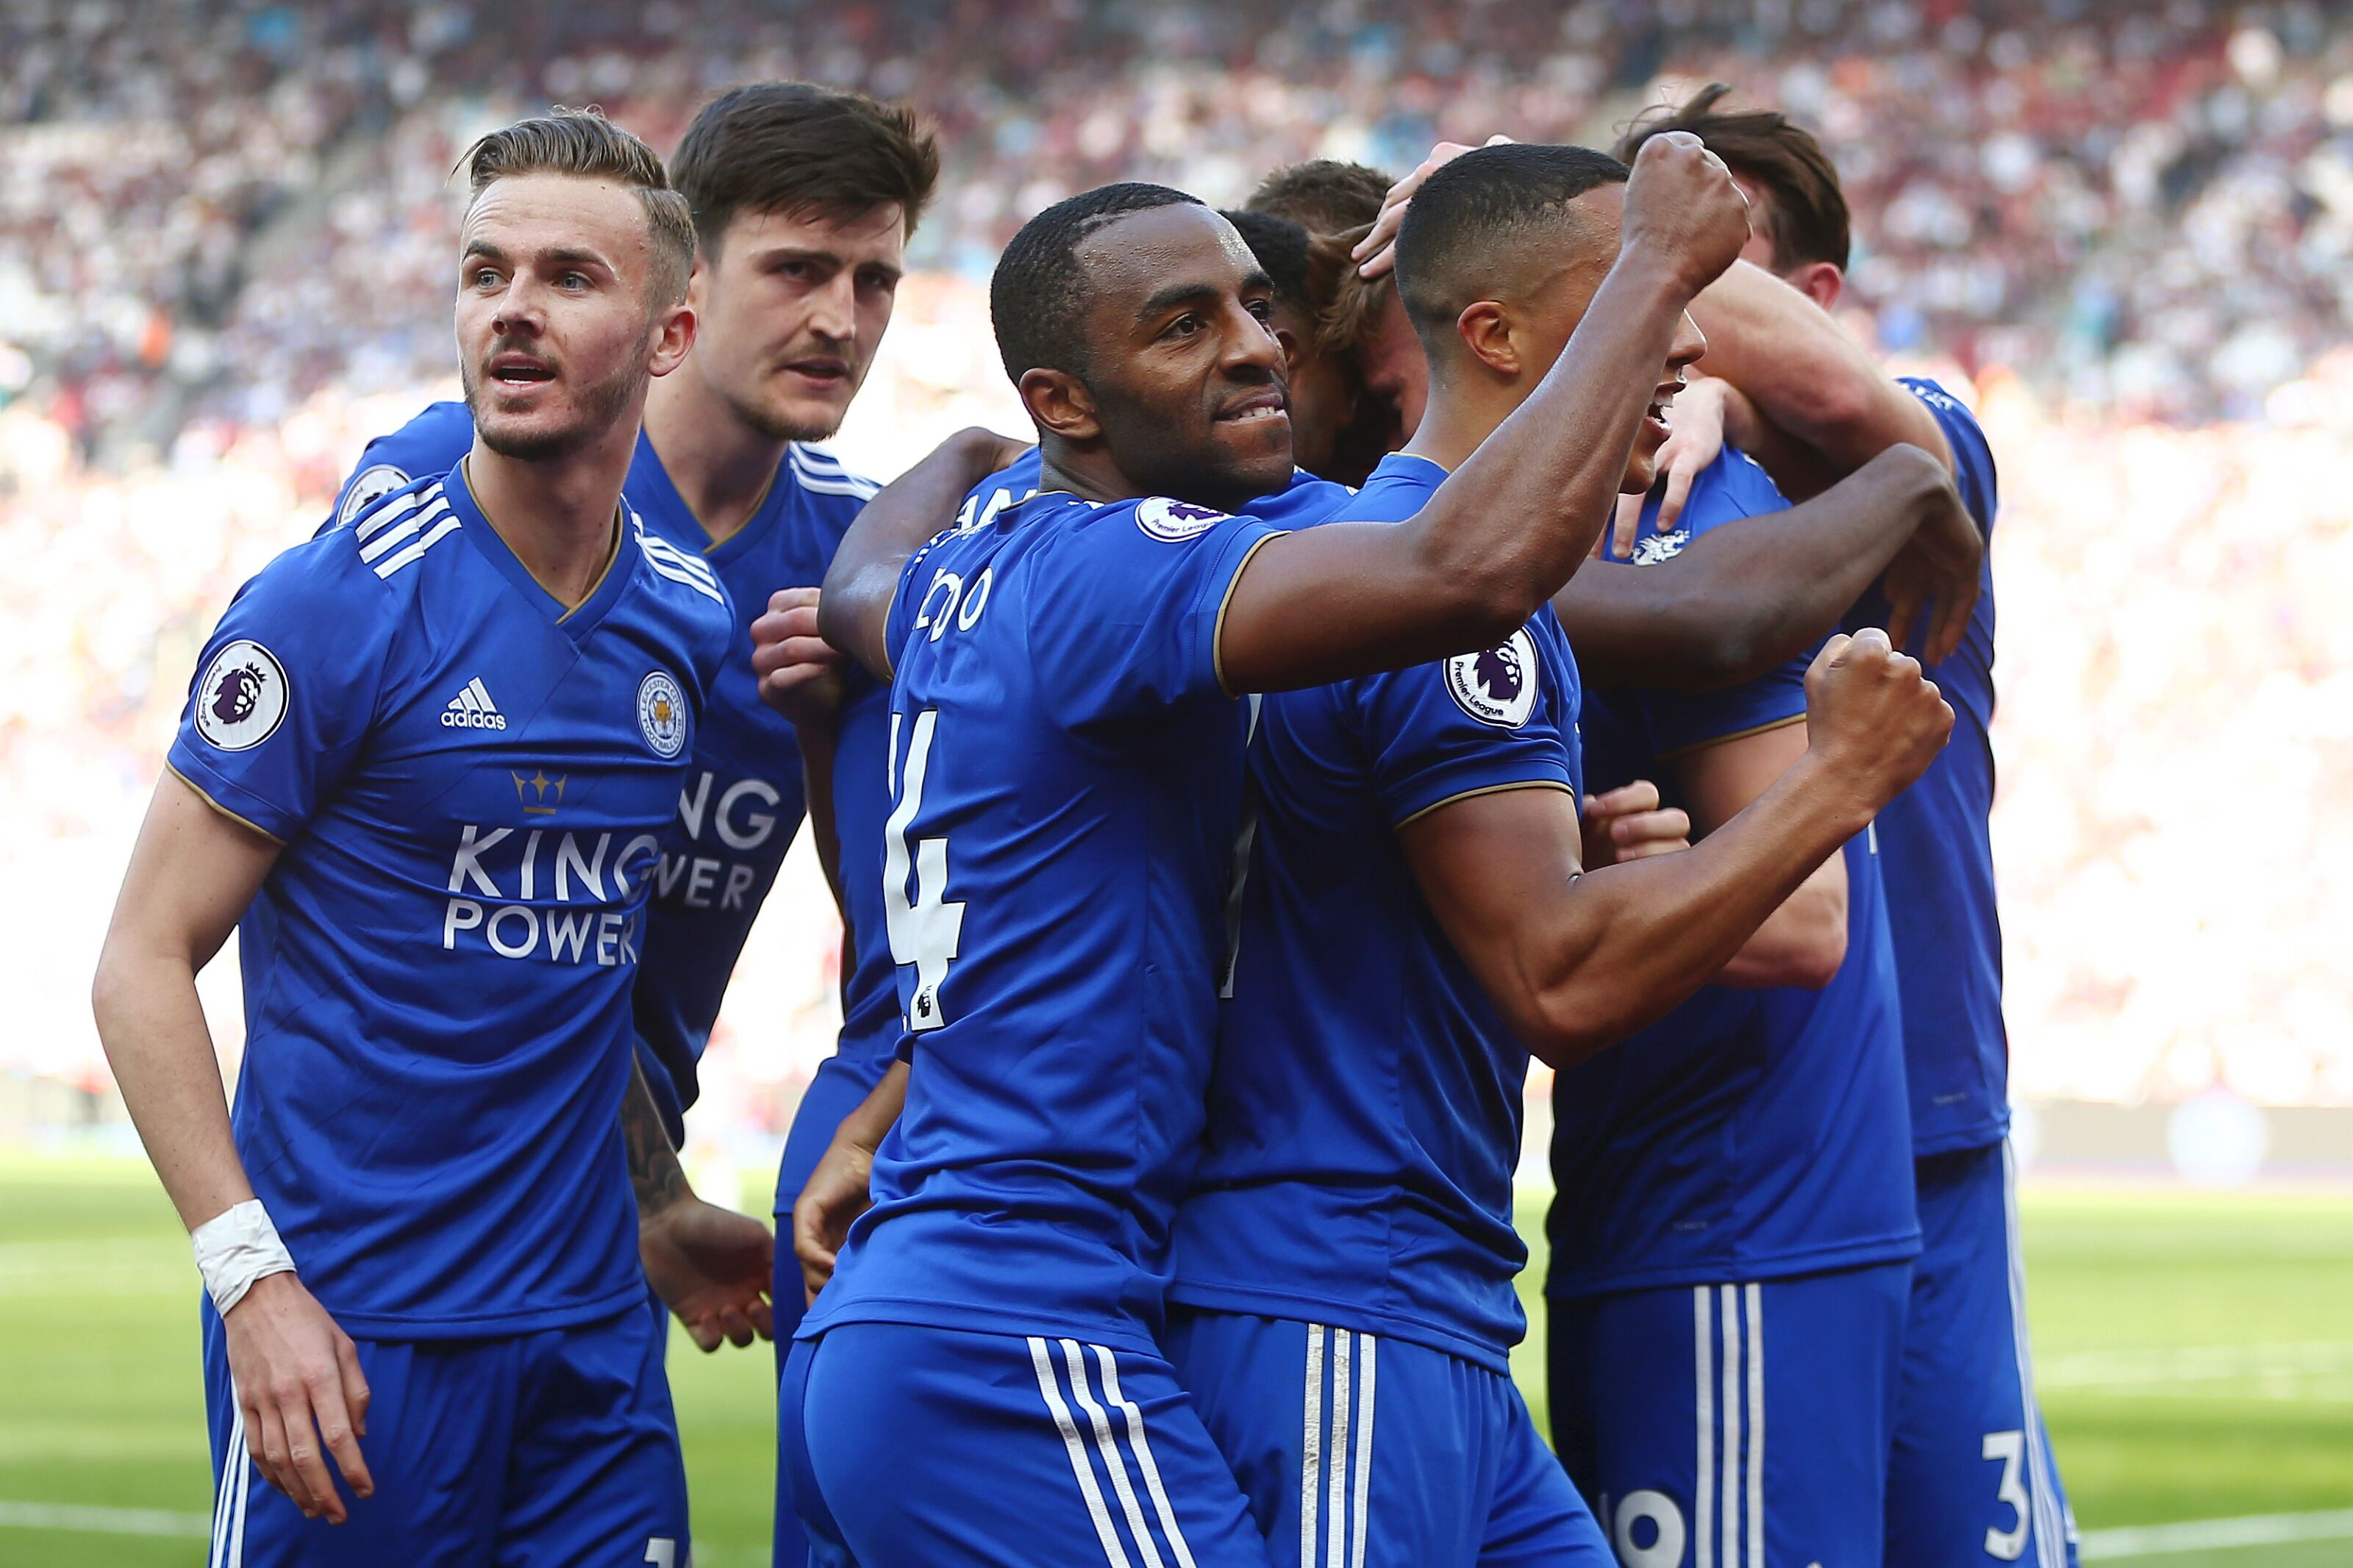 3 Leicester City recommendations for Fantasy Premier League